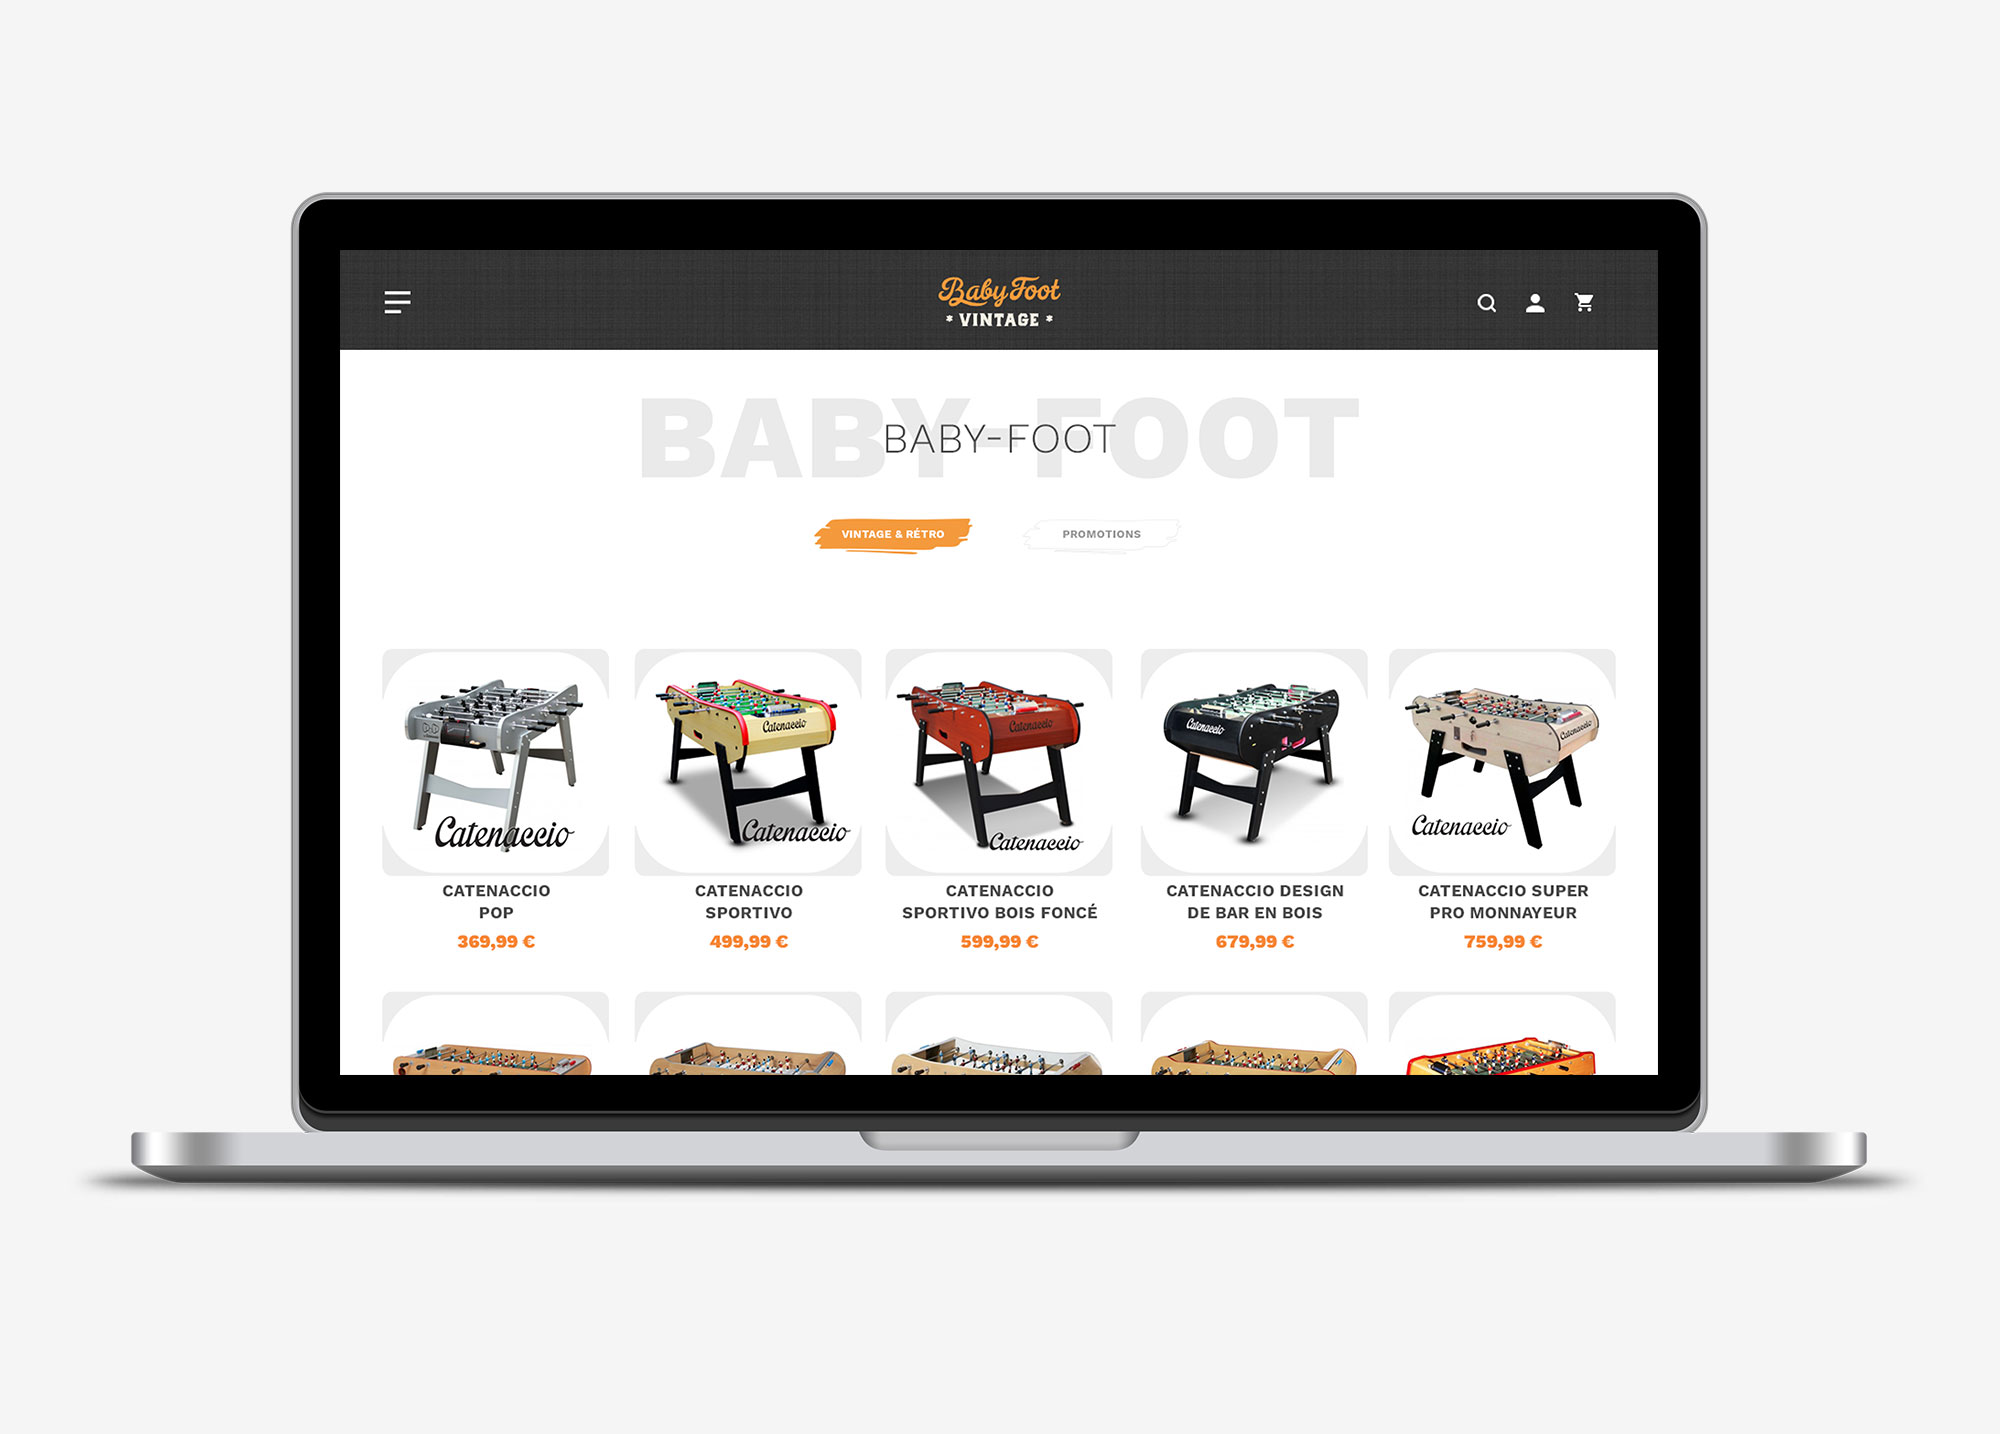 Babyfoot Vintage section catalogue